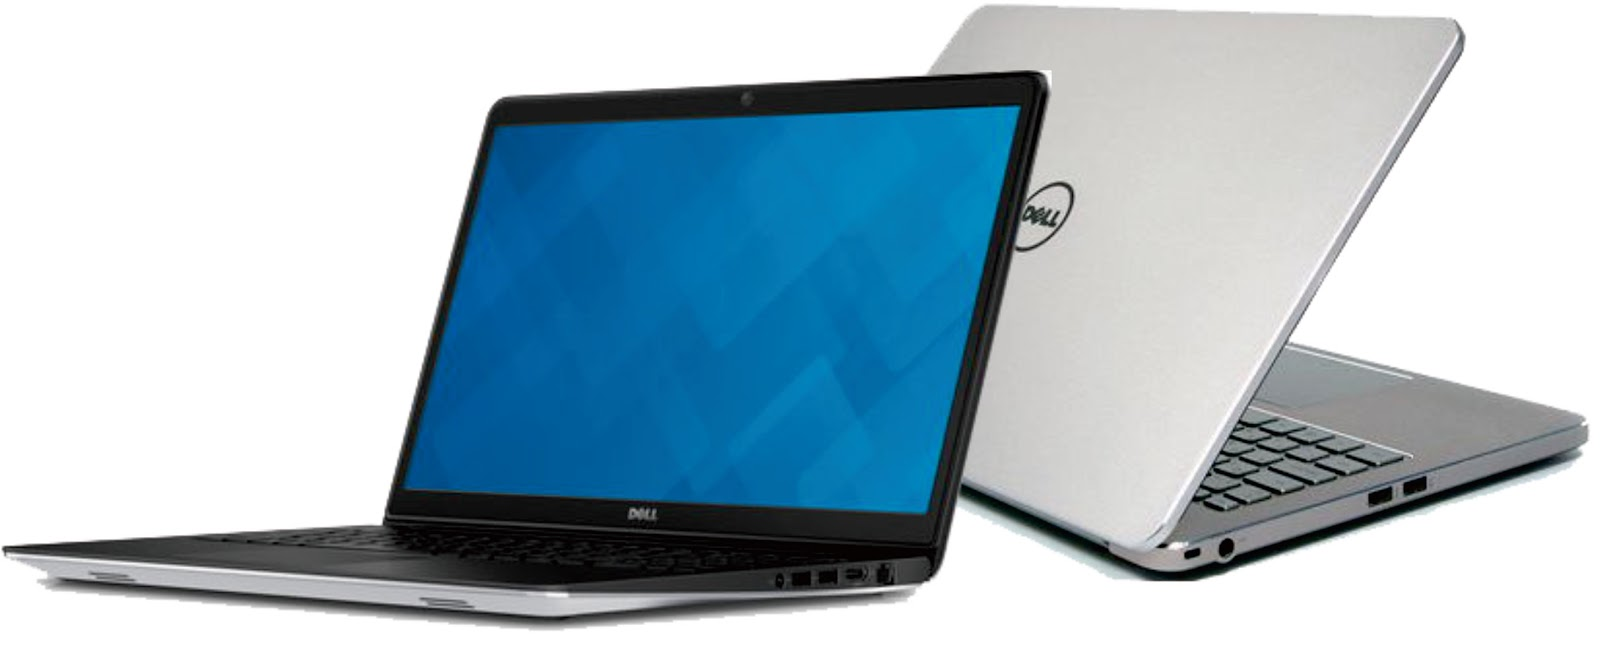 Drivers Support DELL Inspiron 15 5558 for Windows 8 1, 64